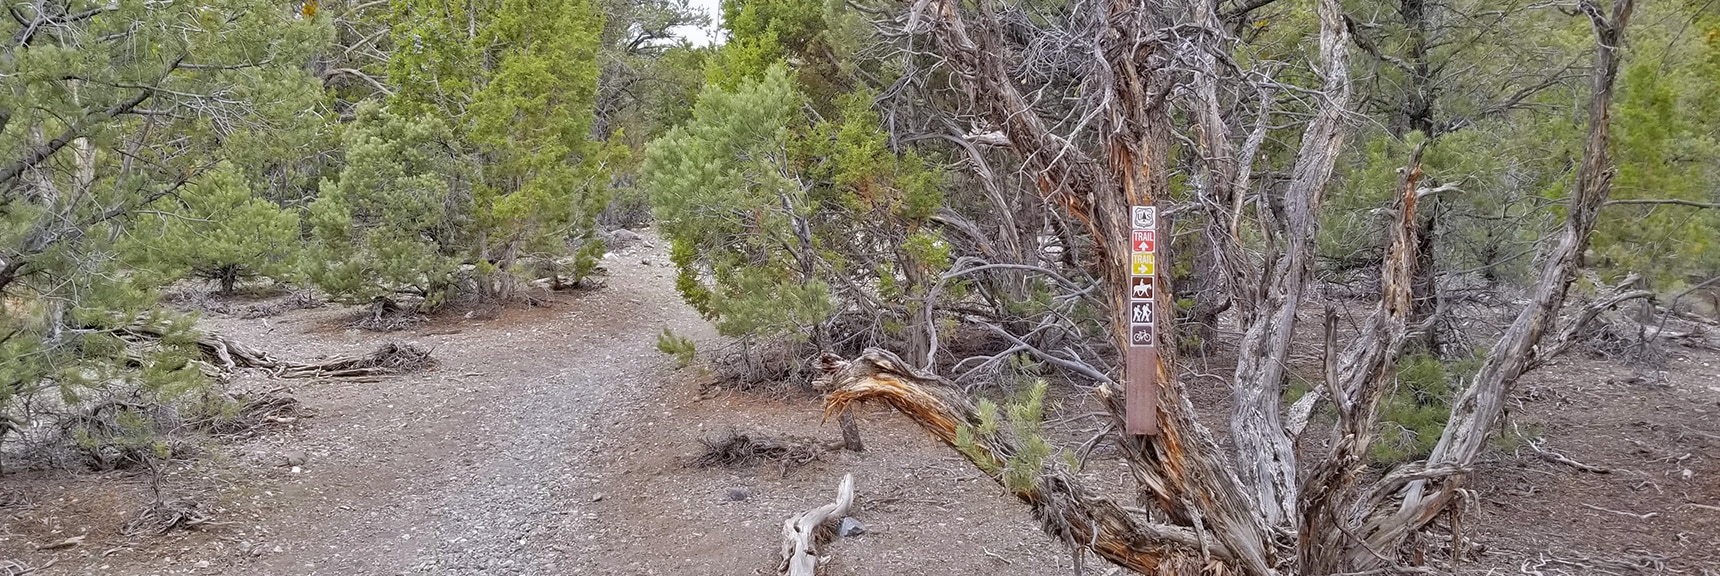 Mud Springs and Sawmill Trails Divide Marker   Sawmill Trail to McFarland Peak   Spring Mountains, Nevada